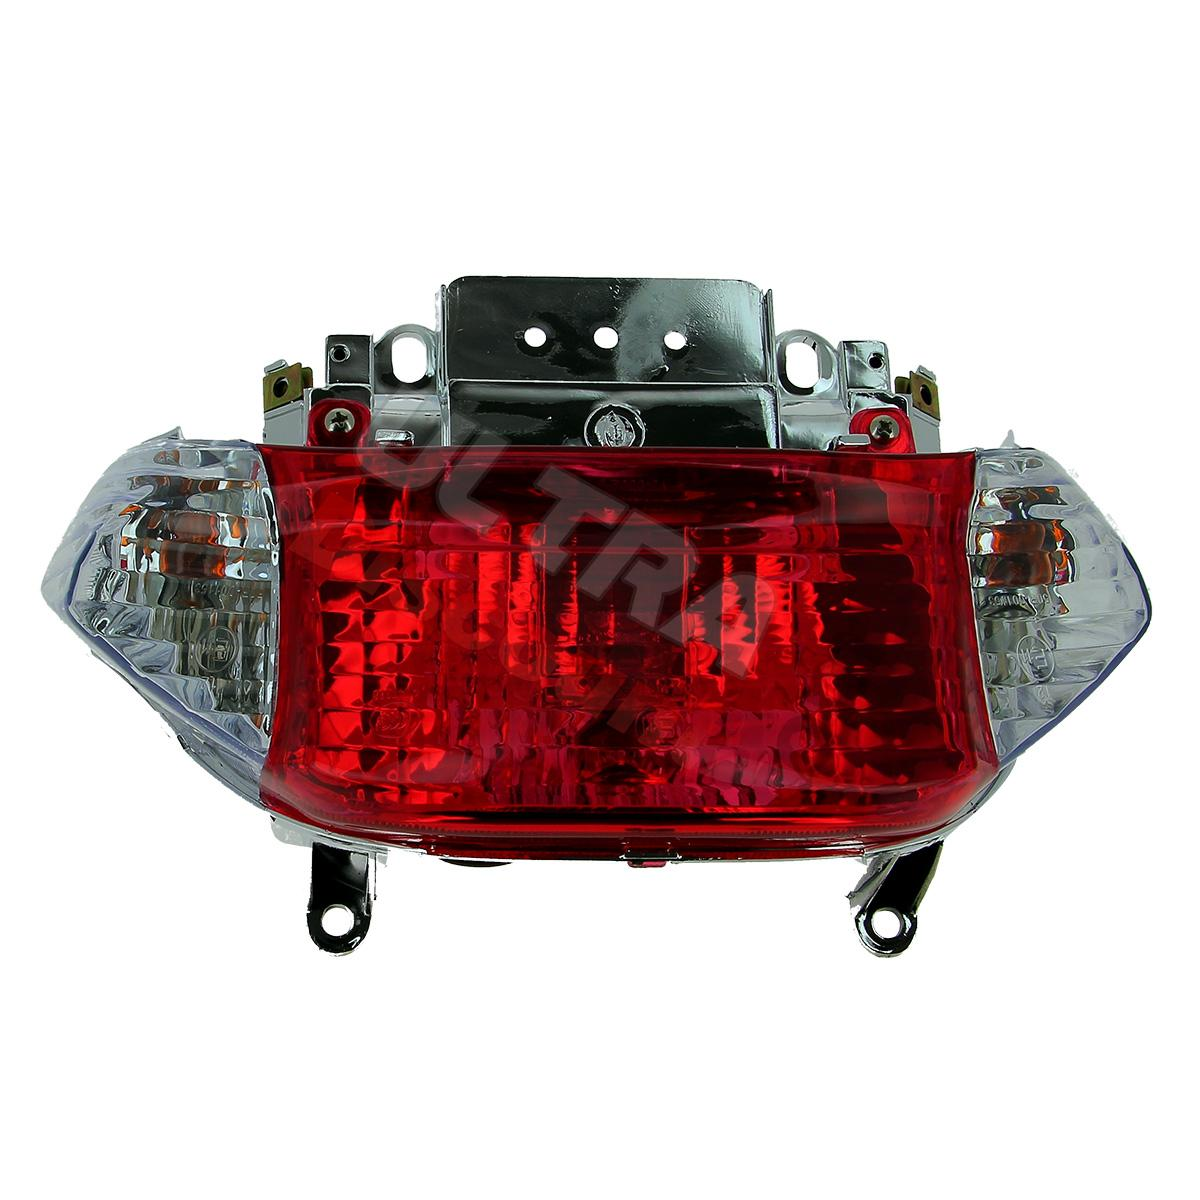 tail light for baotian scooter bt49qt-9, baotian parts - bt49qt-9